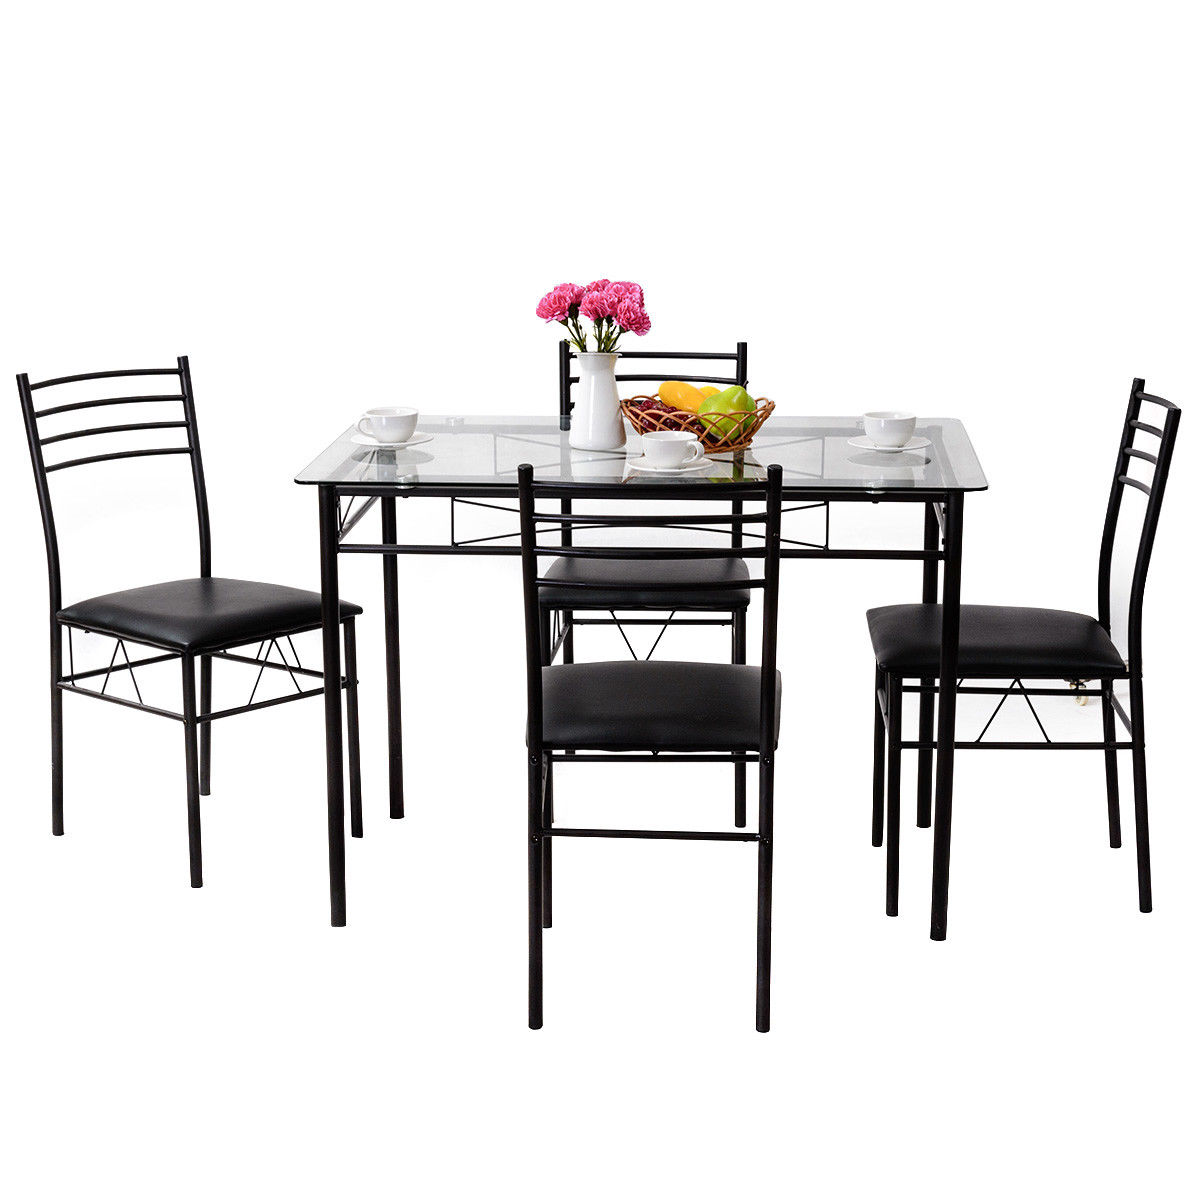 Gymax 5 PC Dining Room Set Glass Top Table and 4 Chairs Kitchen Room Furniture by Gymax